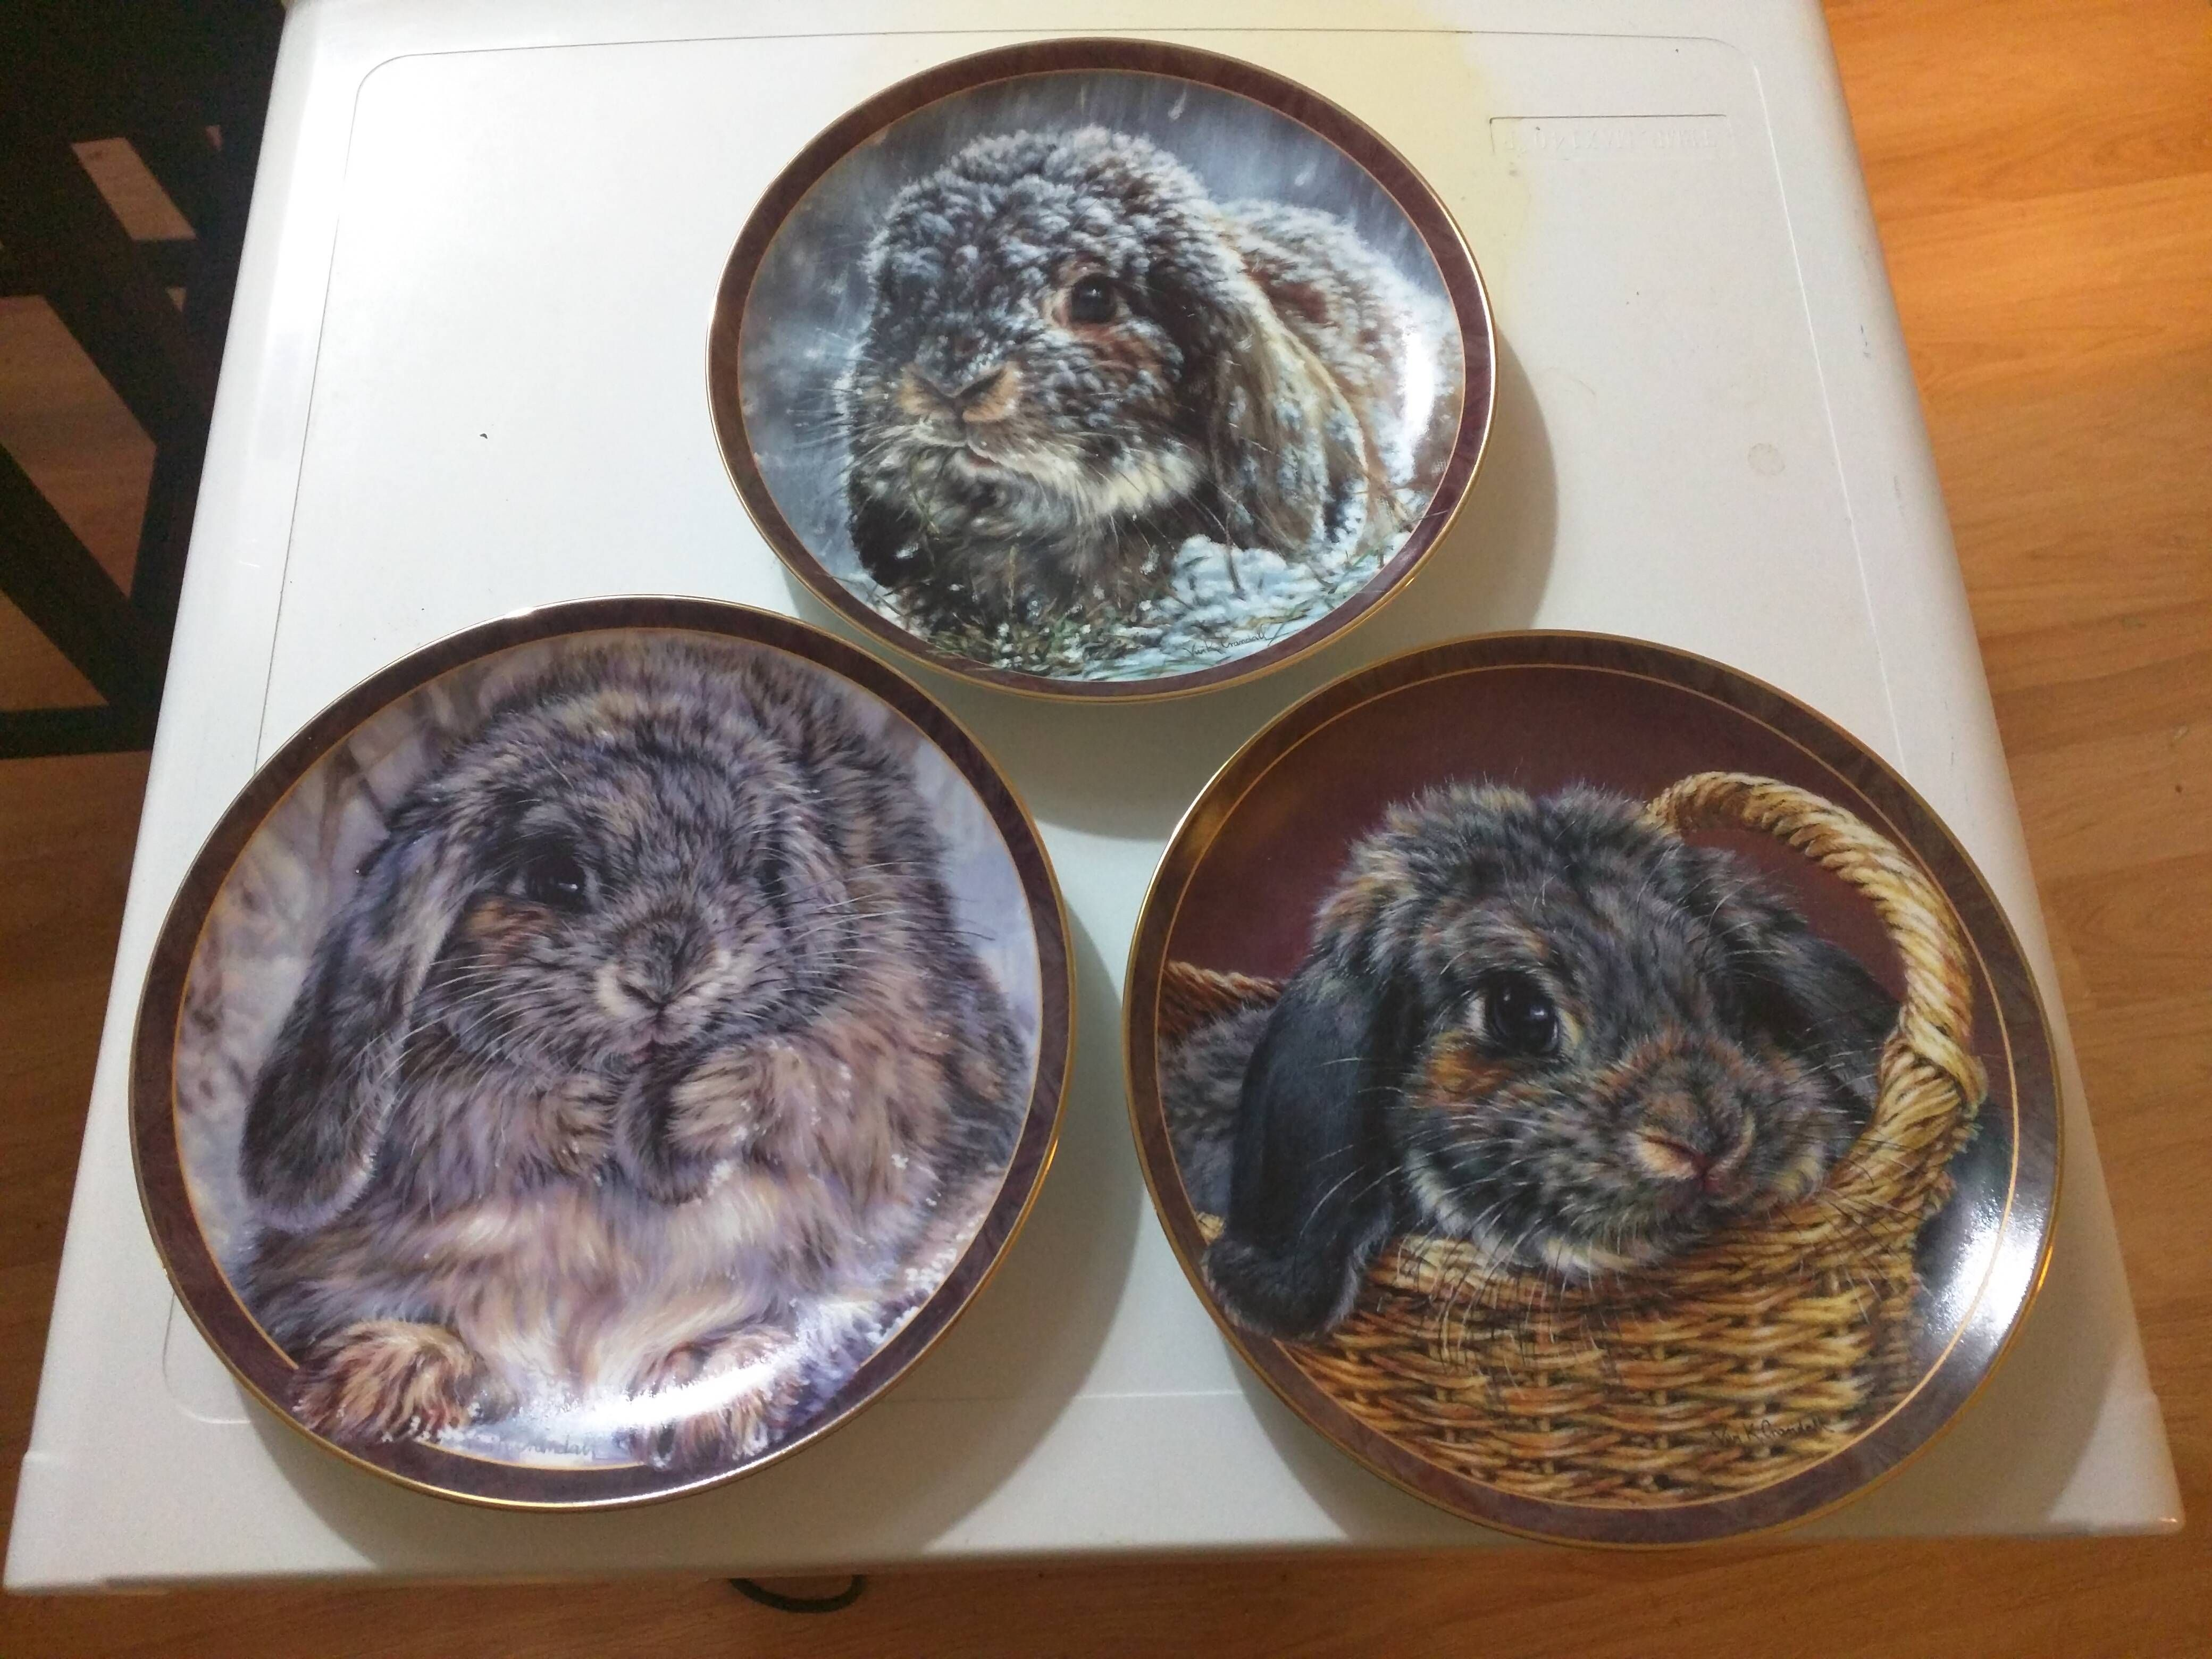 I was gifted some decorative plates. http://ift.tt/23Uq0Na